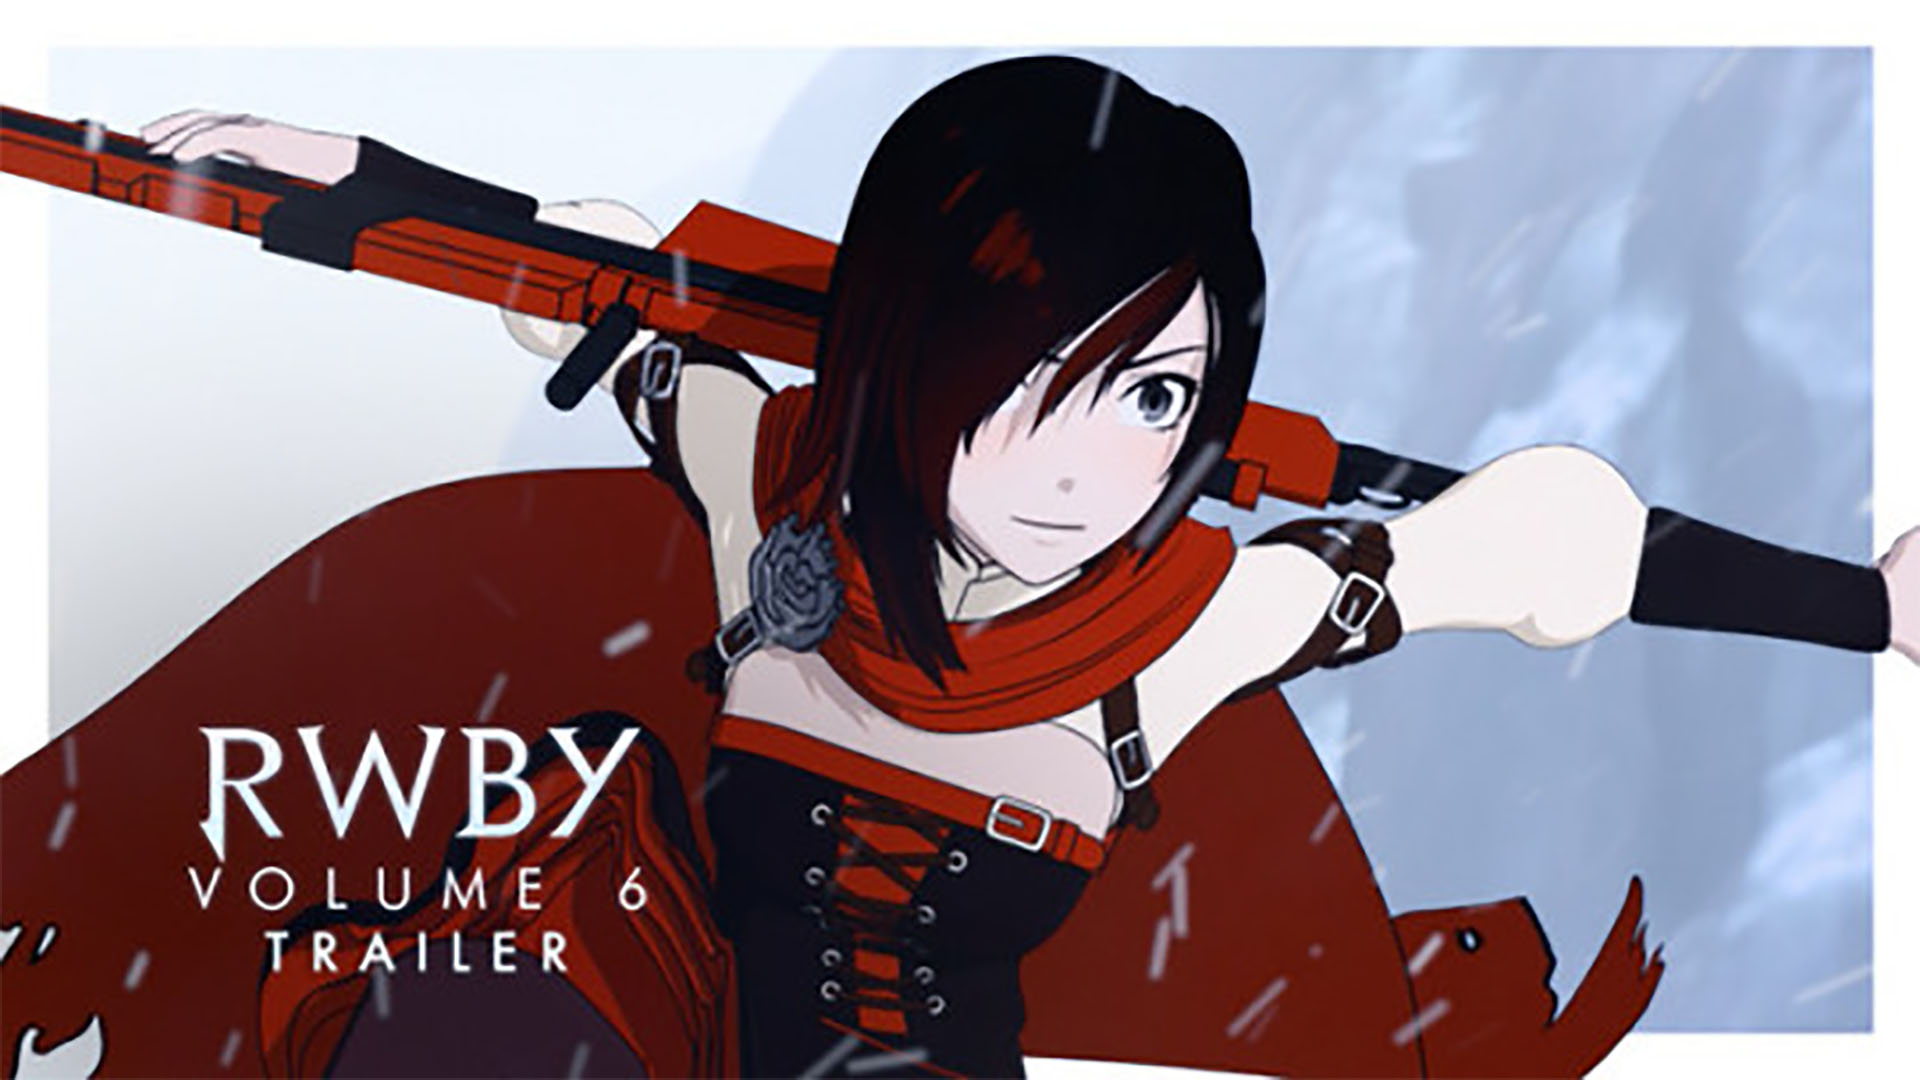 Volume 6 Trailer | RWBY Wiki | FANDOM powered by Wikia